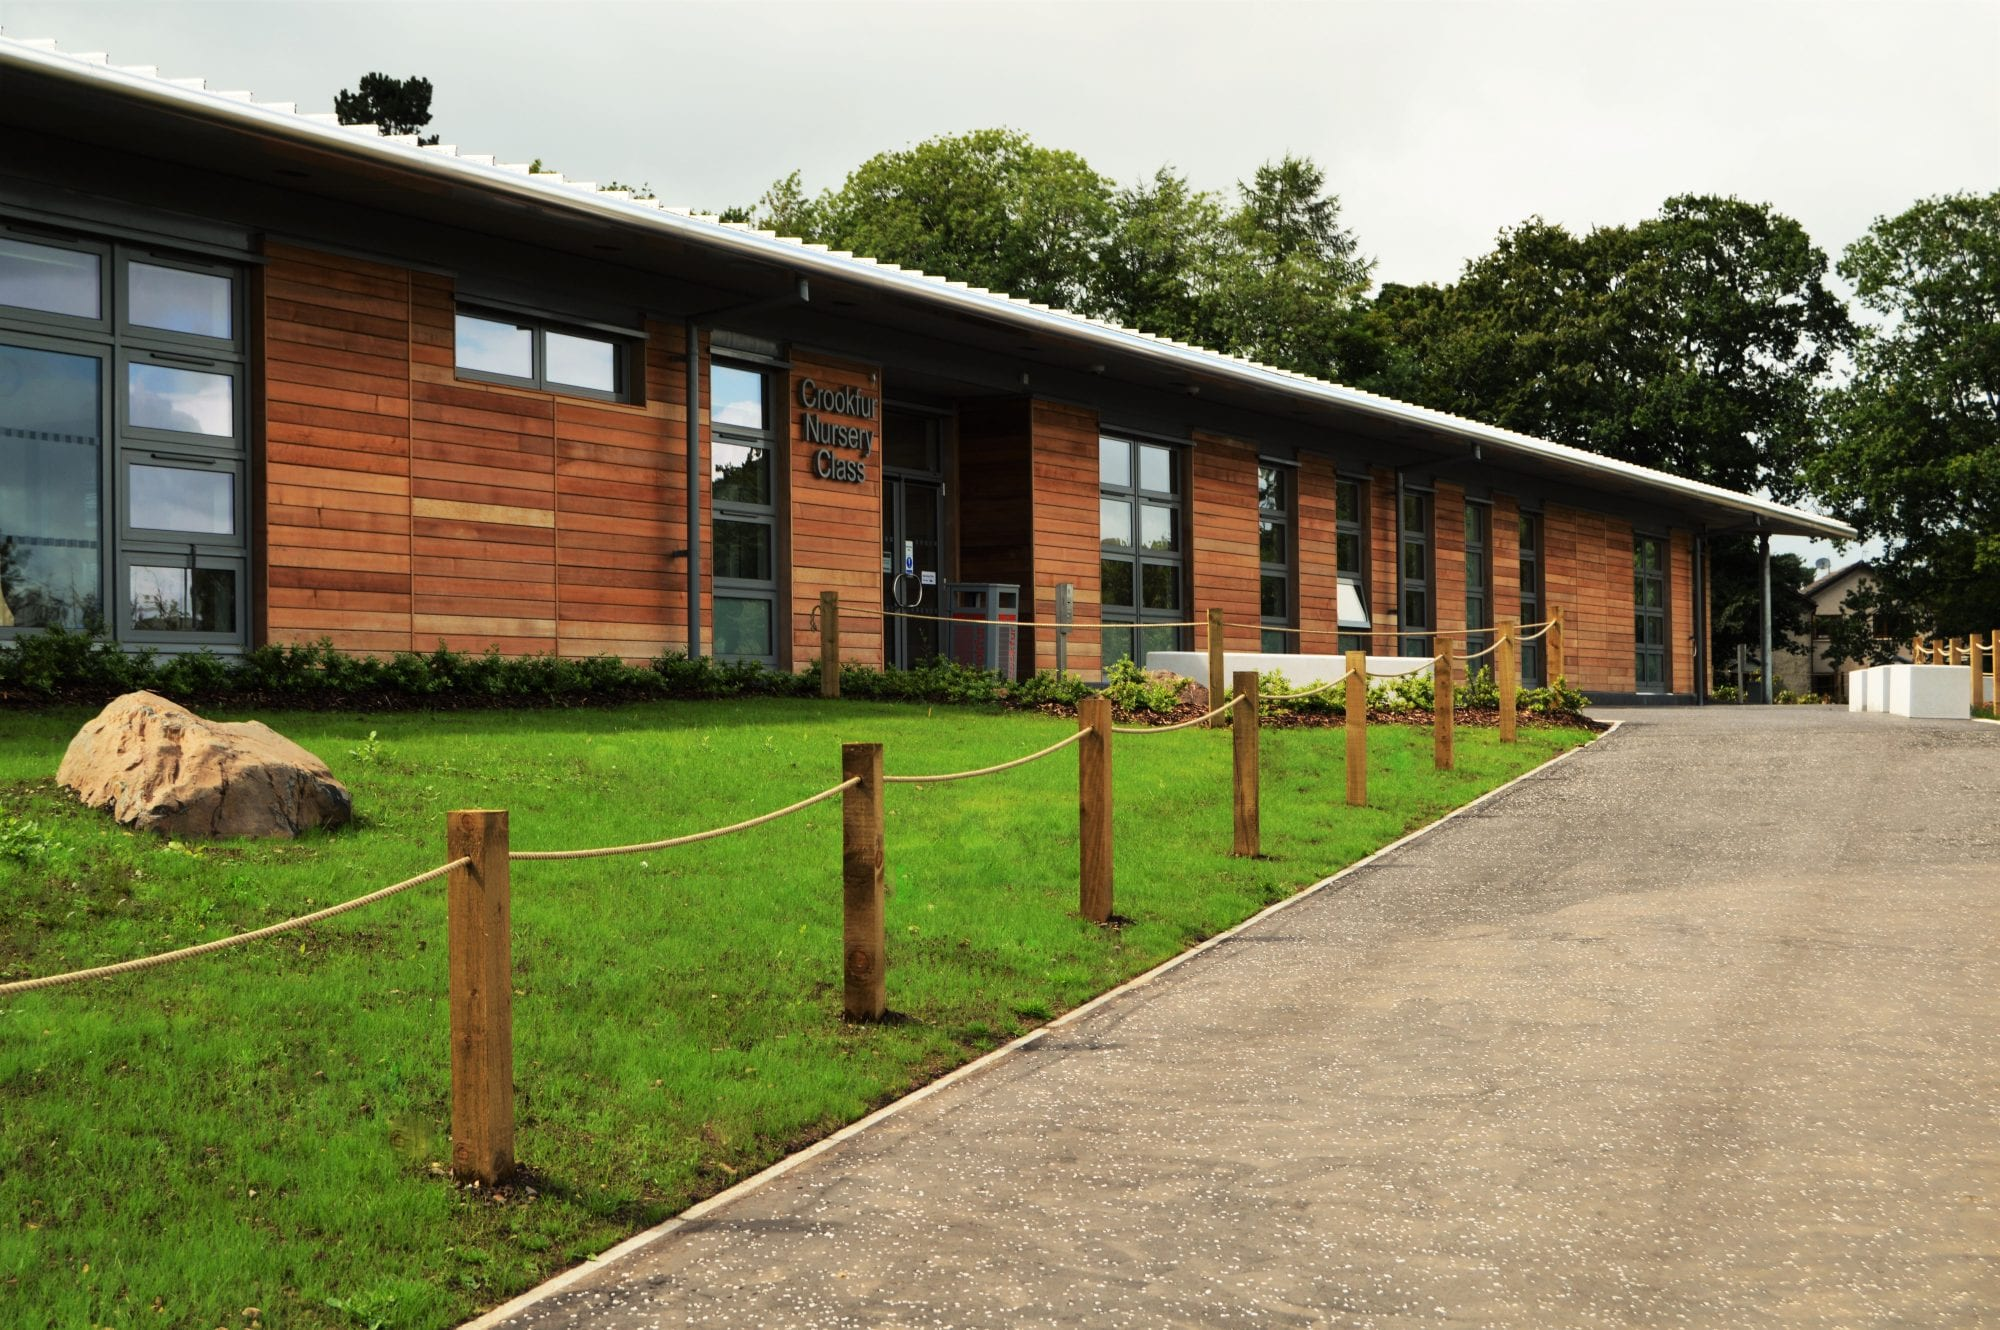 Crookfur Primary School & Nursery